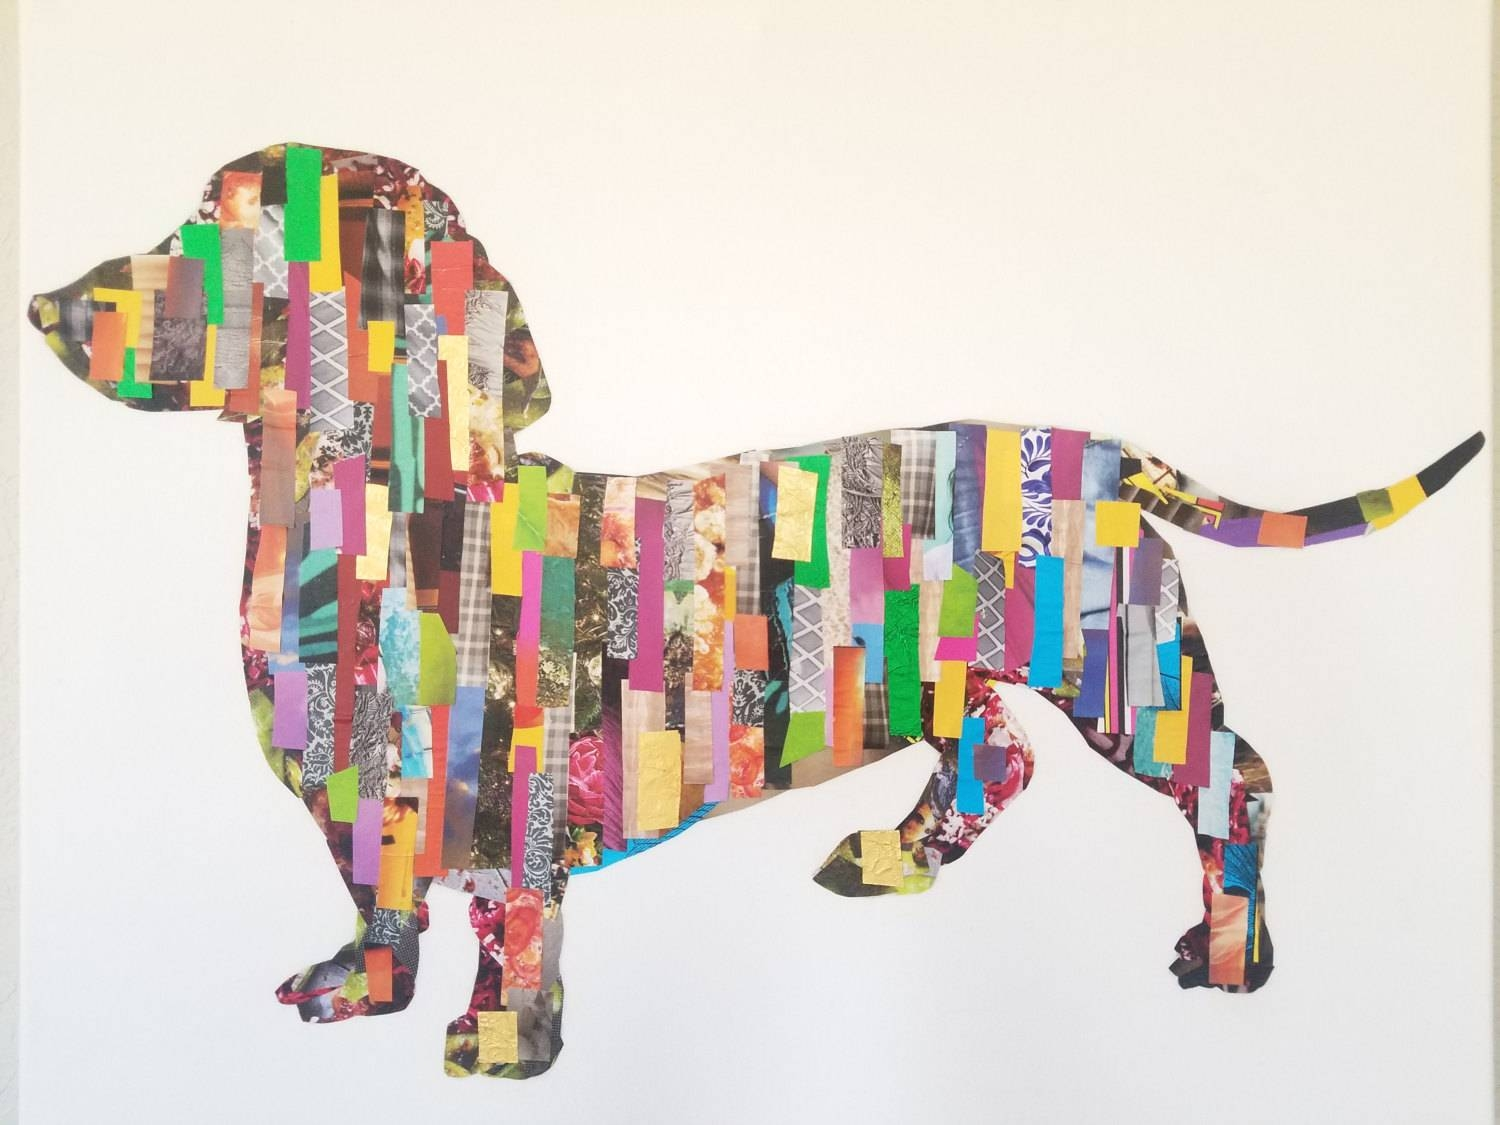 Dachshund Decoupage Wall Art Pertaining To Most Recently Released Decoupage Wall Art (View 6 of 30)